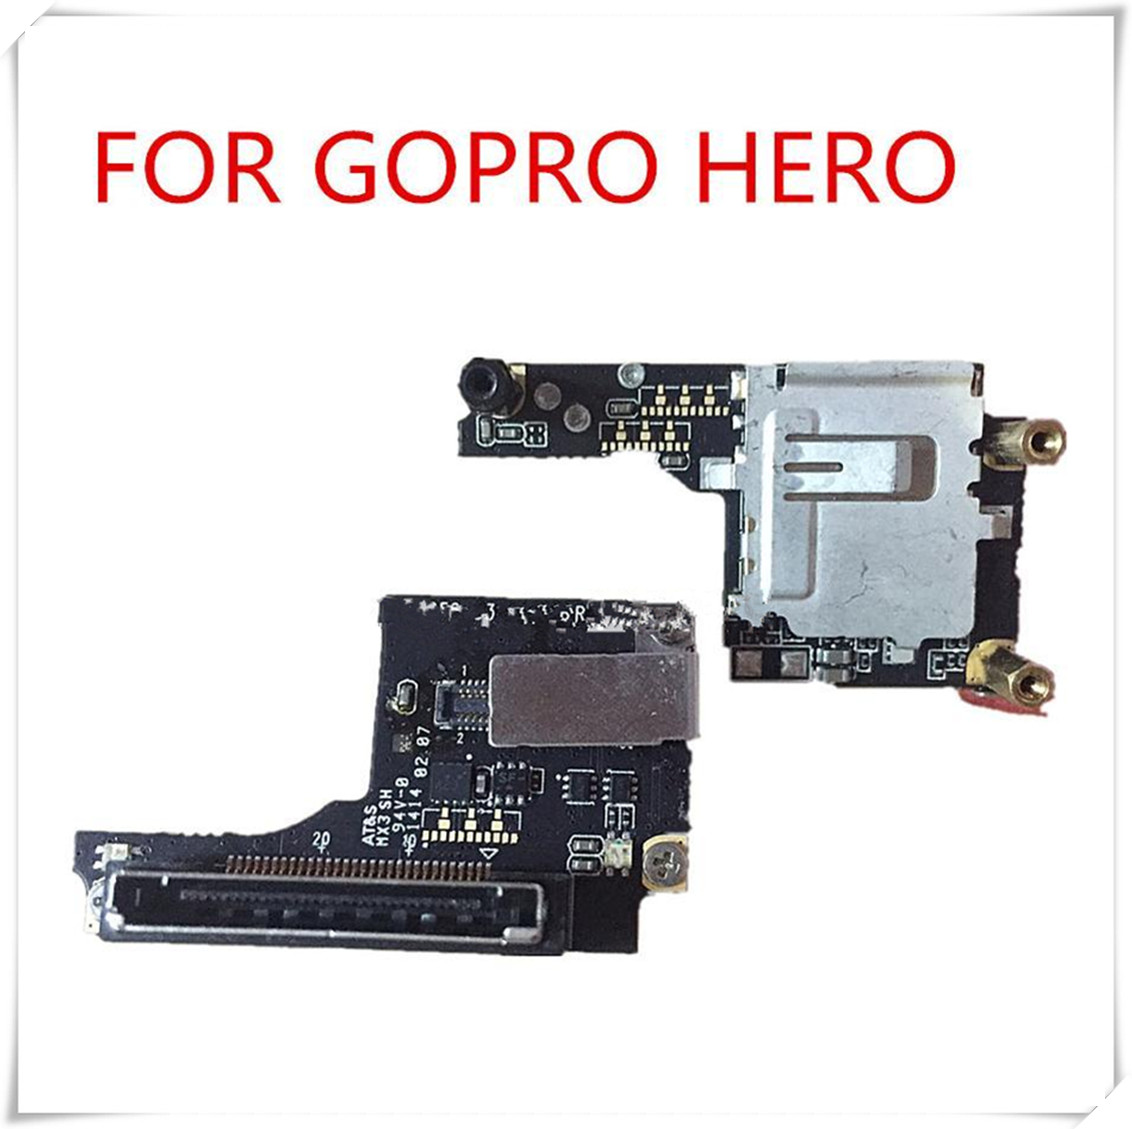 Gopro Replacement Hero 3+ SD Board Hero 3 plus SD board TF card reader for Gopro Hero 3+ Power Board